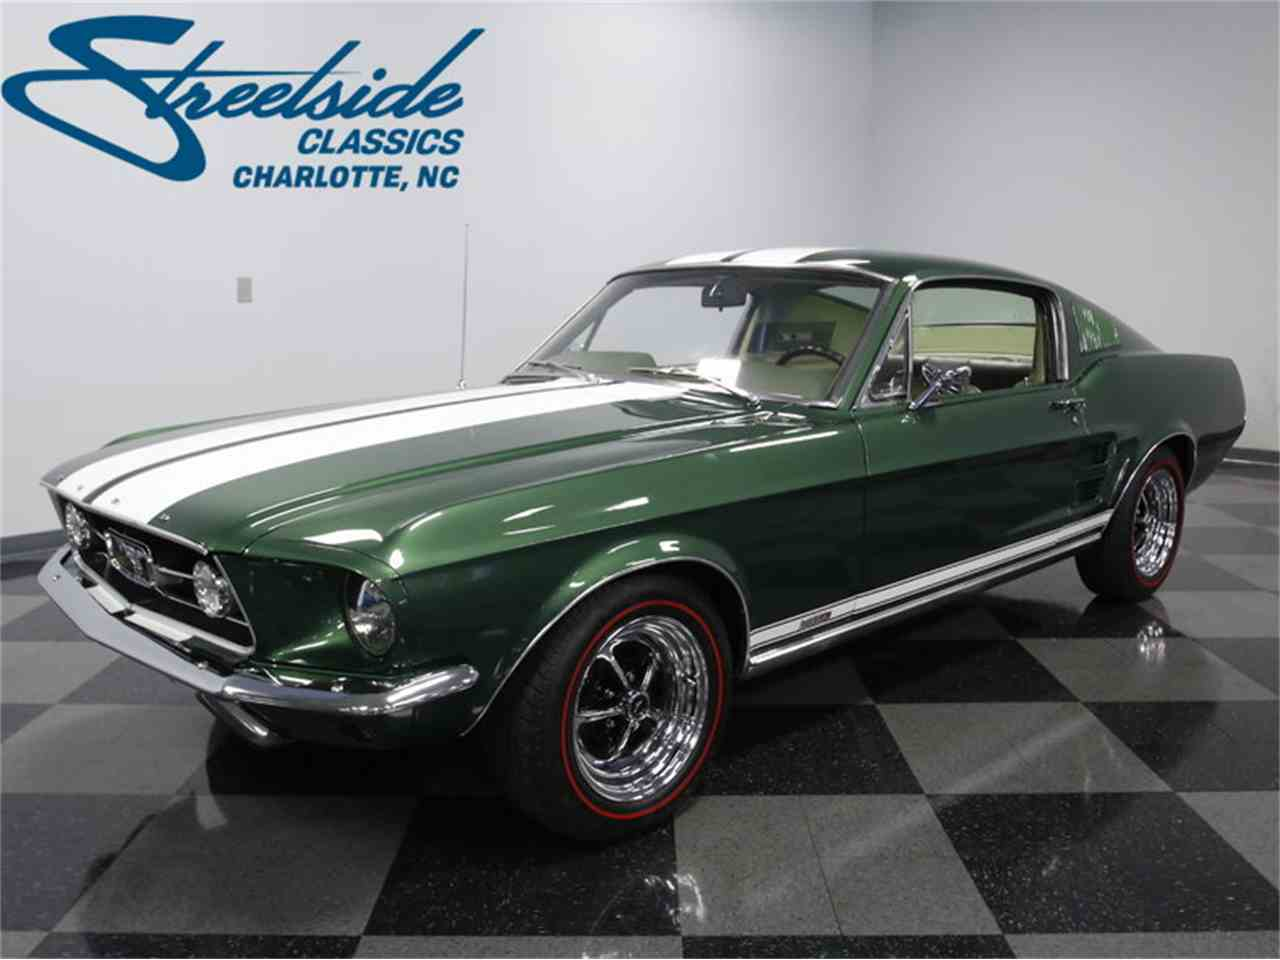 1967 Ford Mustang GTA Fastback for Sale   ClassicCars.com   CC-1015447